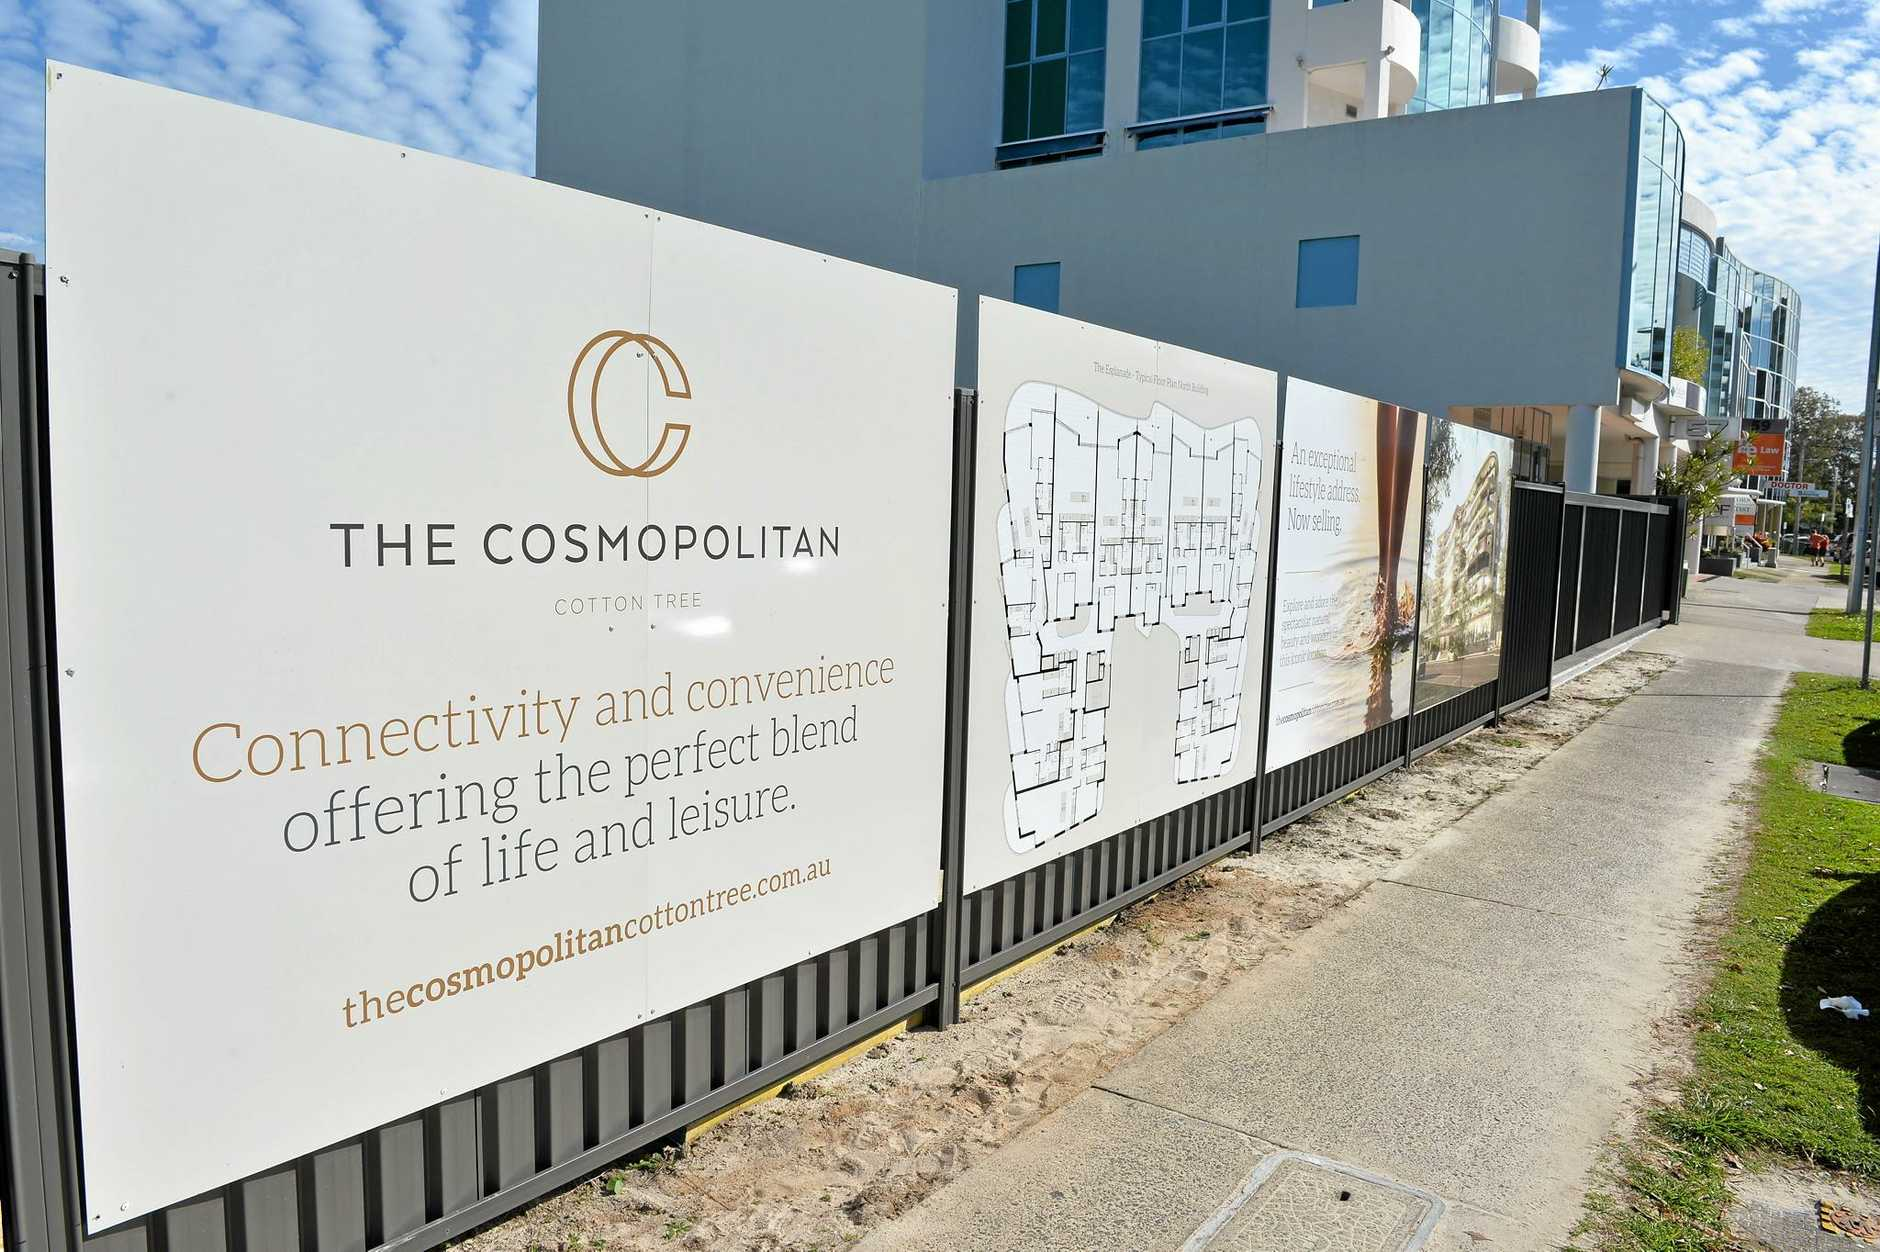 GREEN LIGHT: The Cosmopolitan has been approved for development at Cotton Tree.